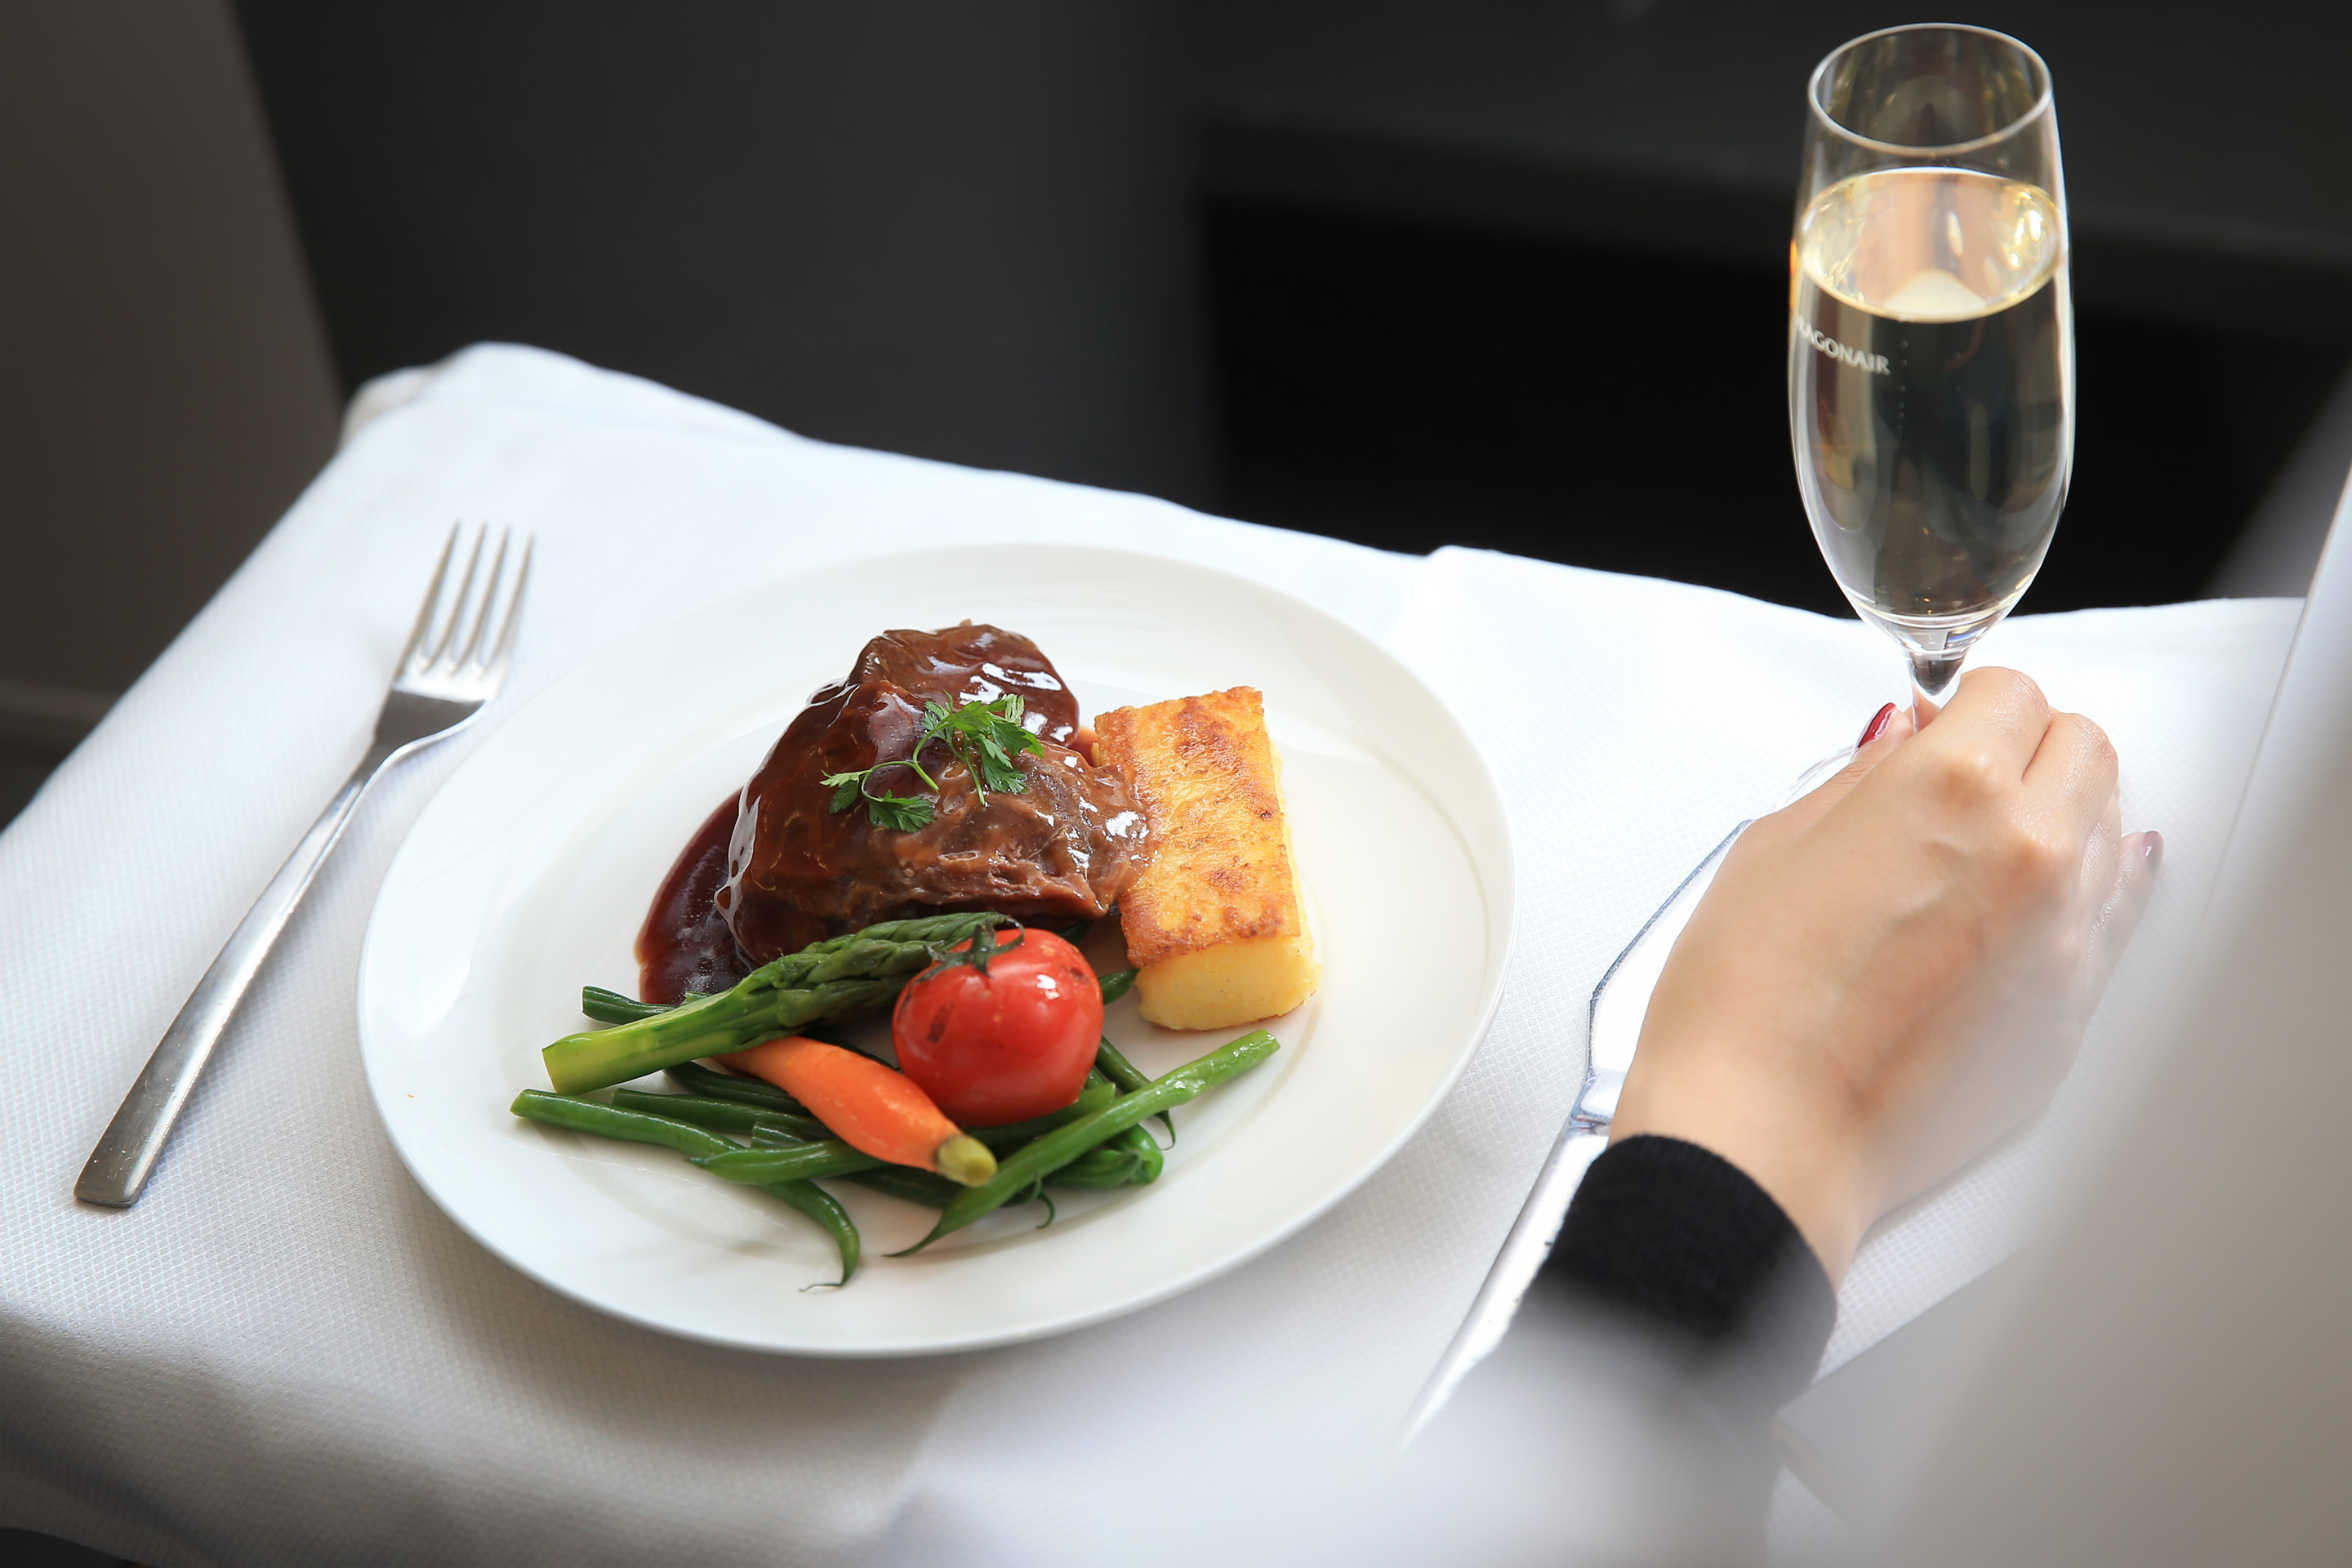 Dragonair renews partnership with fine-dining restaurant Hugo\u0027s to offer exclusive inflight menu featuring selection of classic European dishes & Travel PR News | Dragonair renews partnership with fine-dining ...